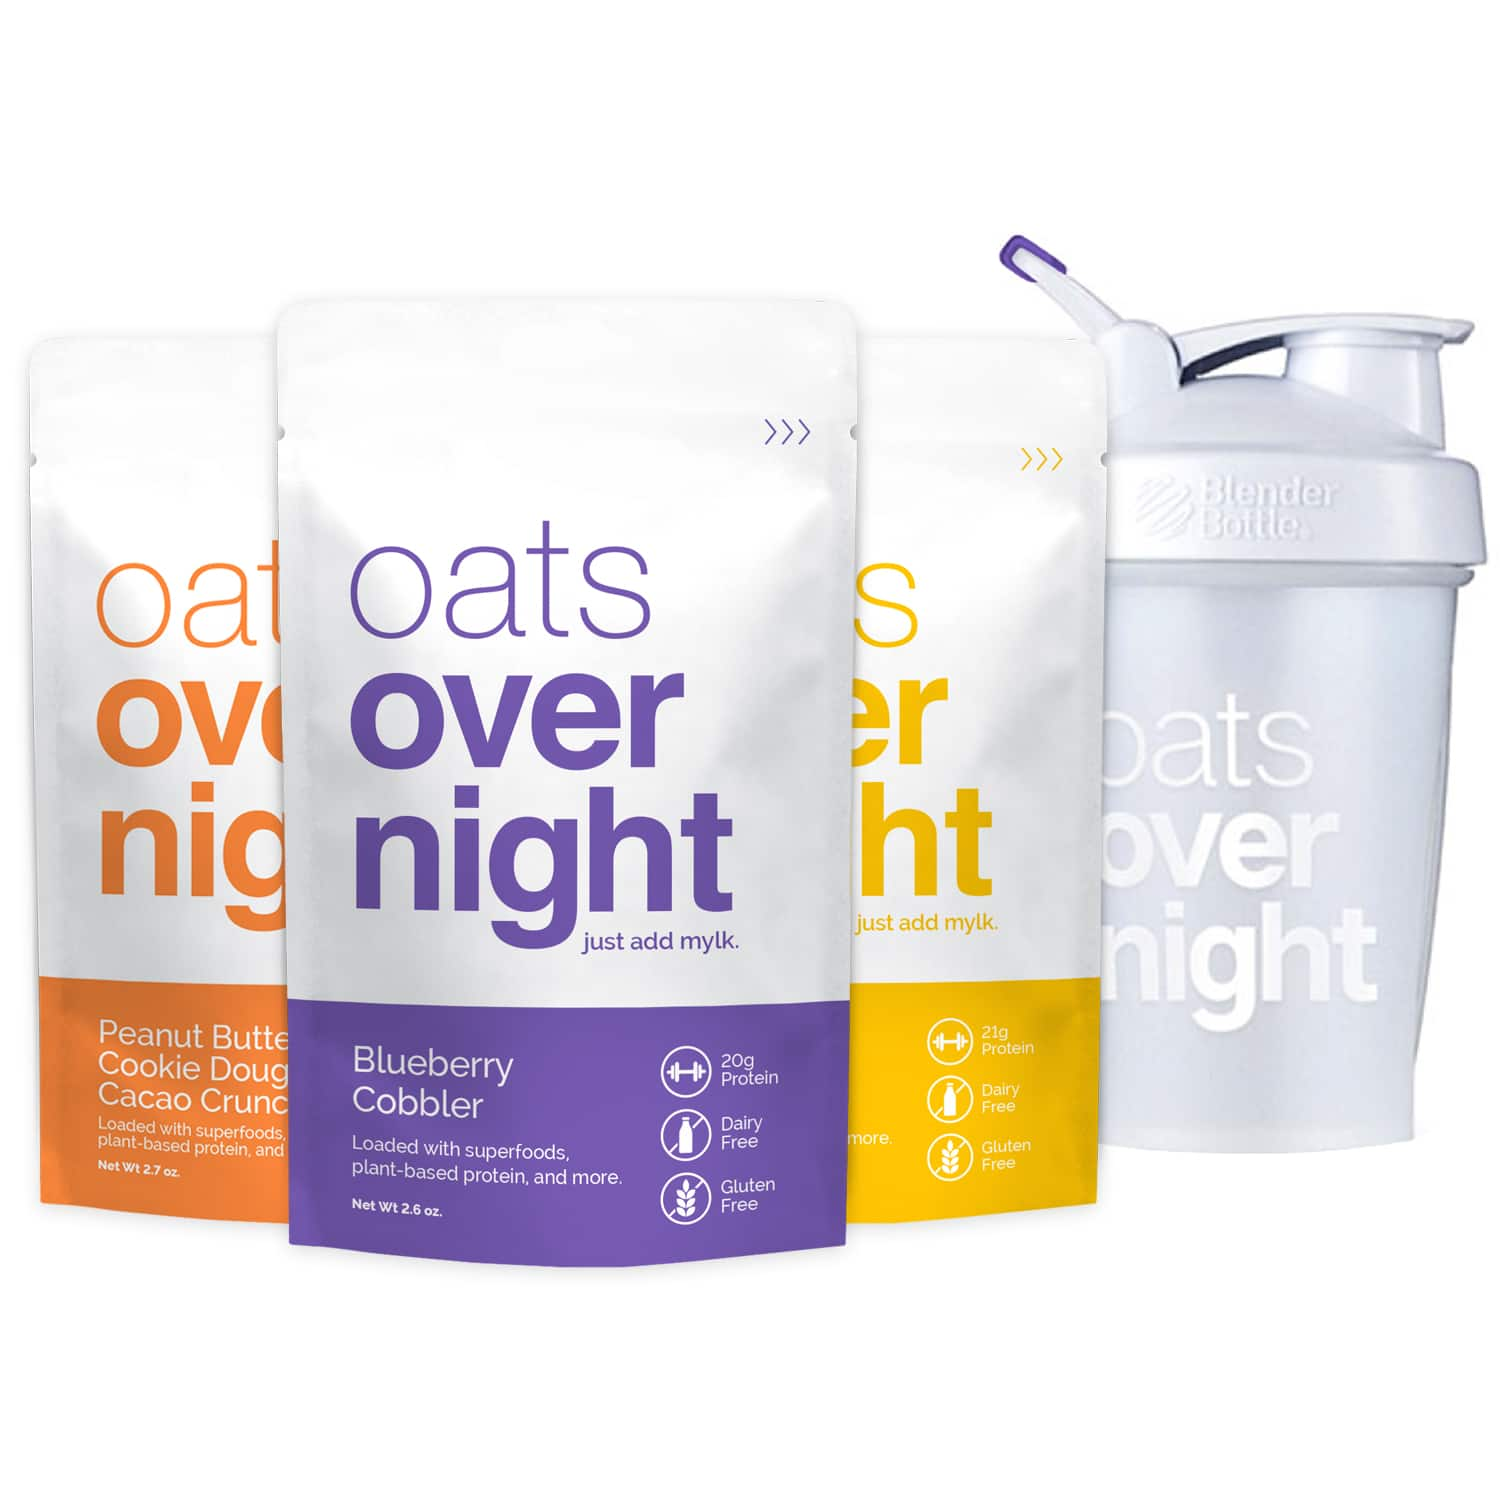 Oats Overnight Launches Vegan Line